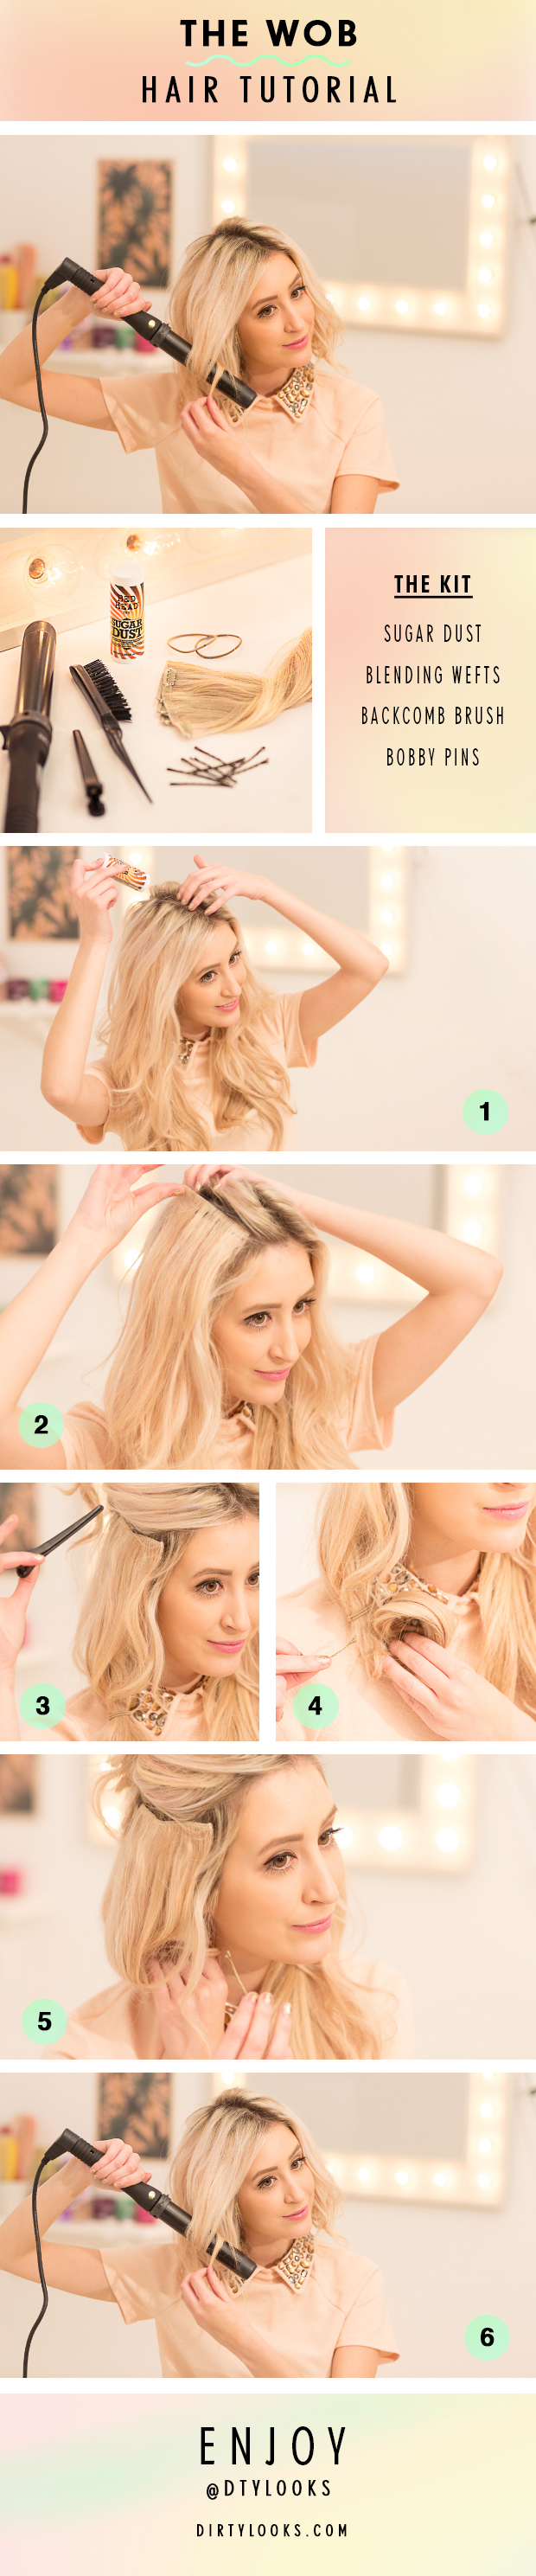 Wob Hair Tutorial